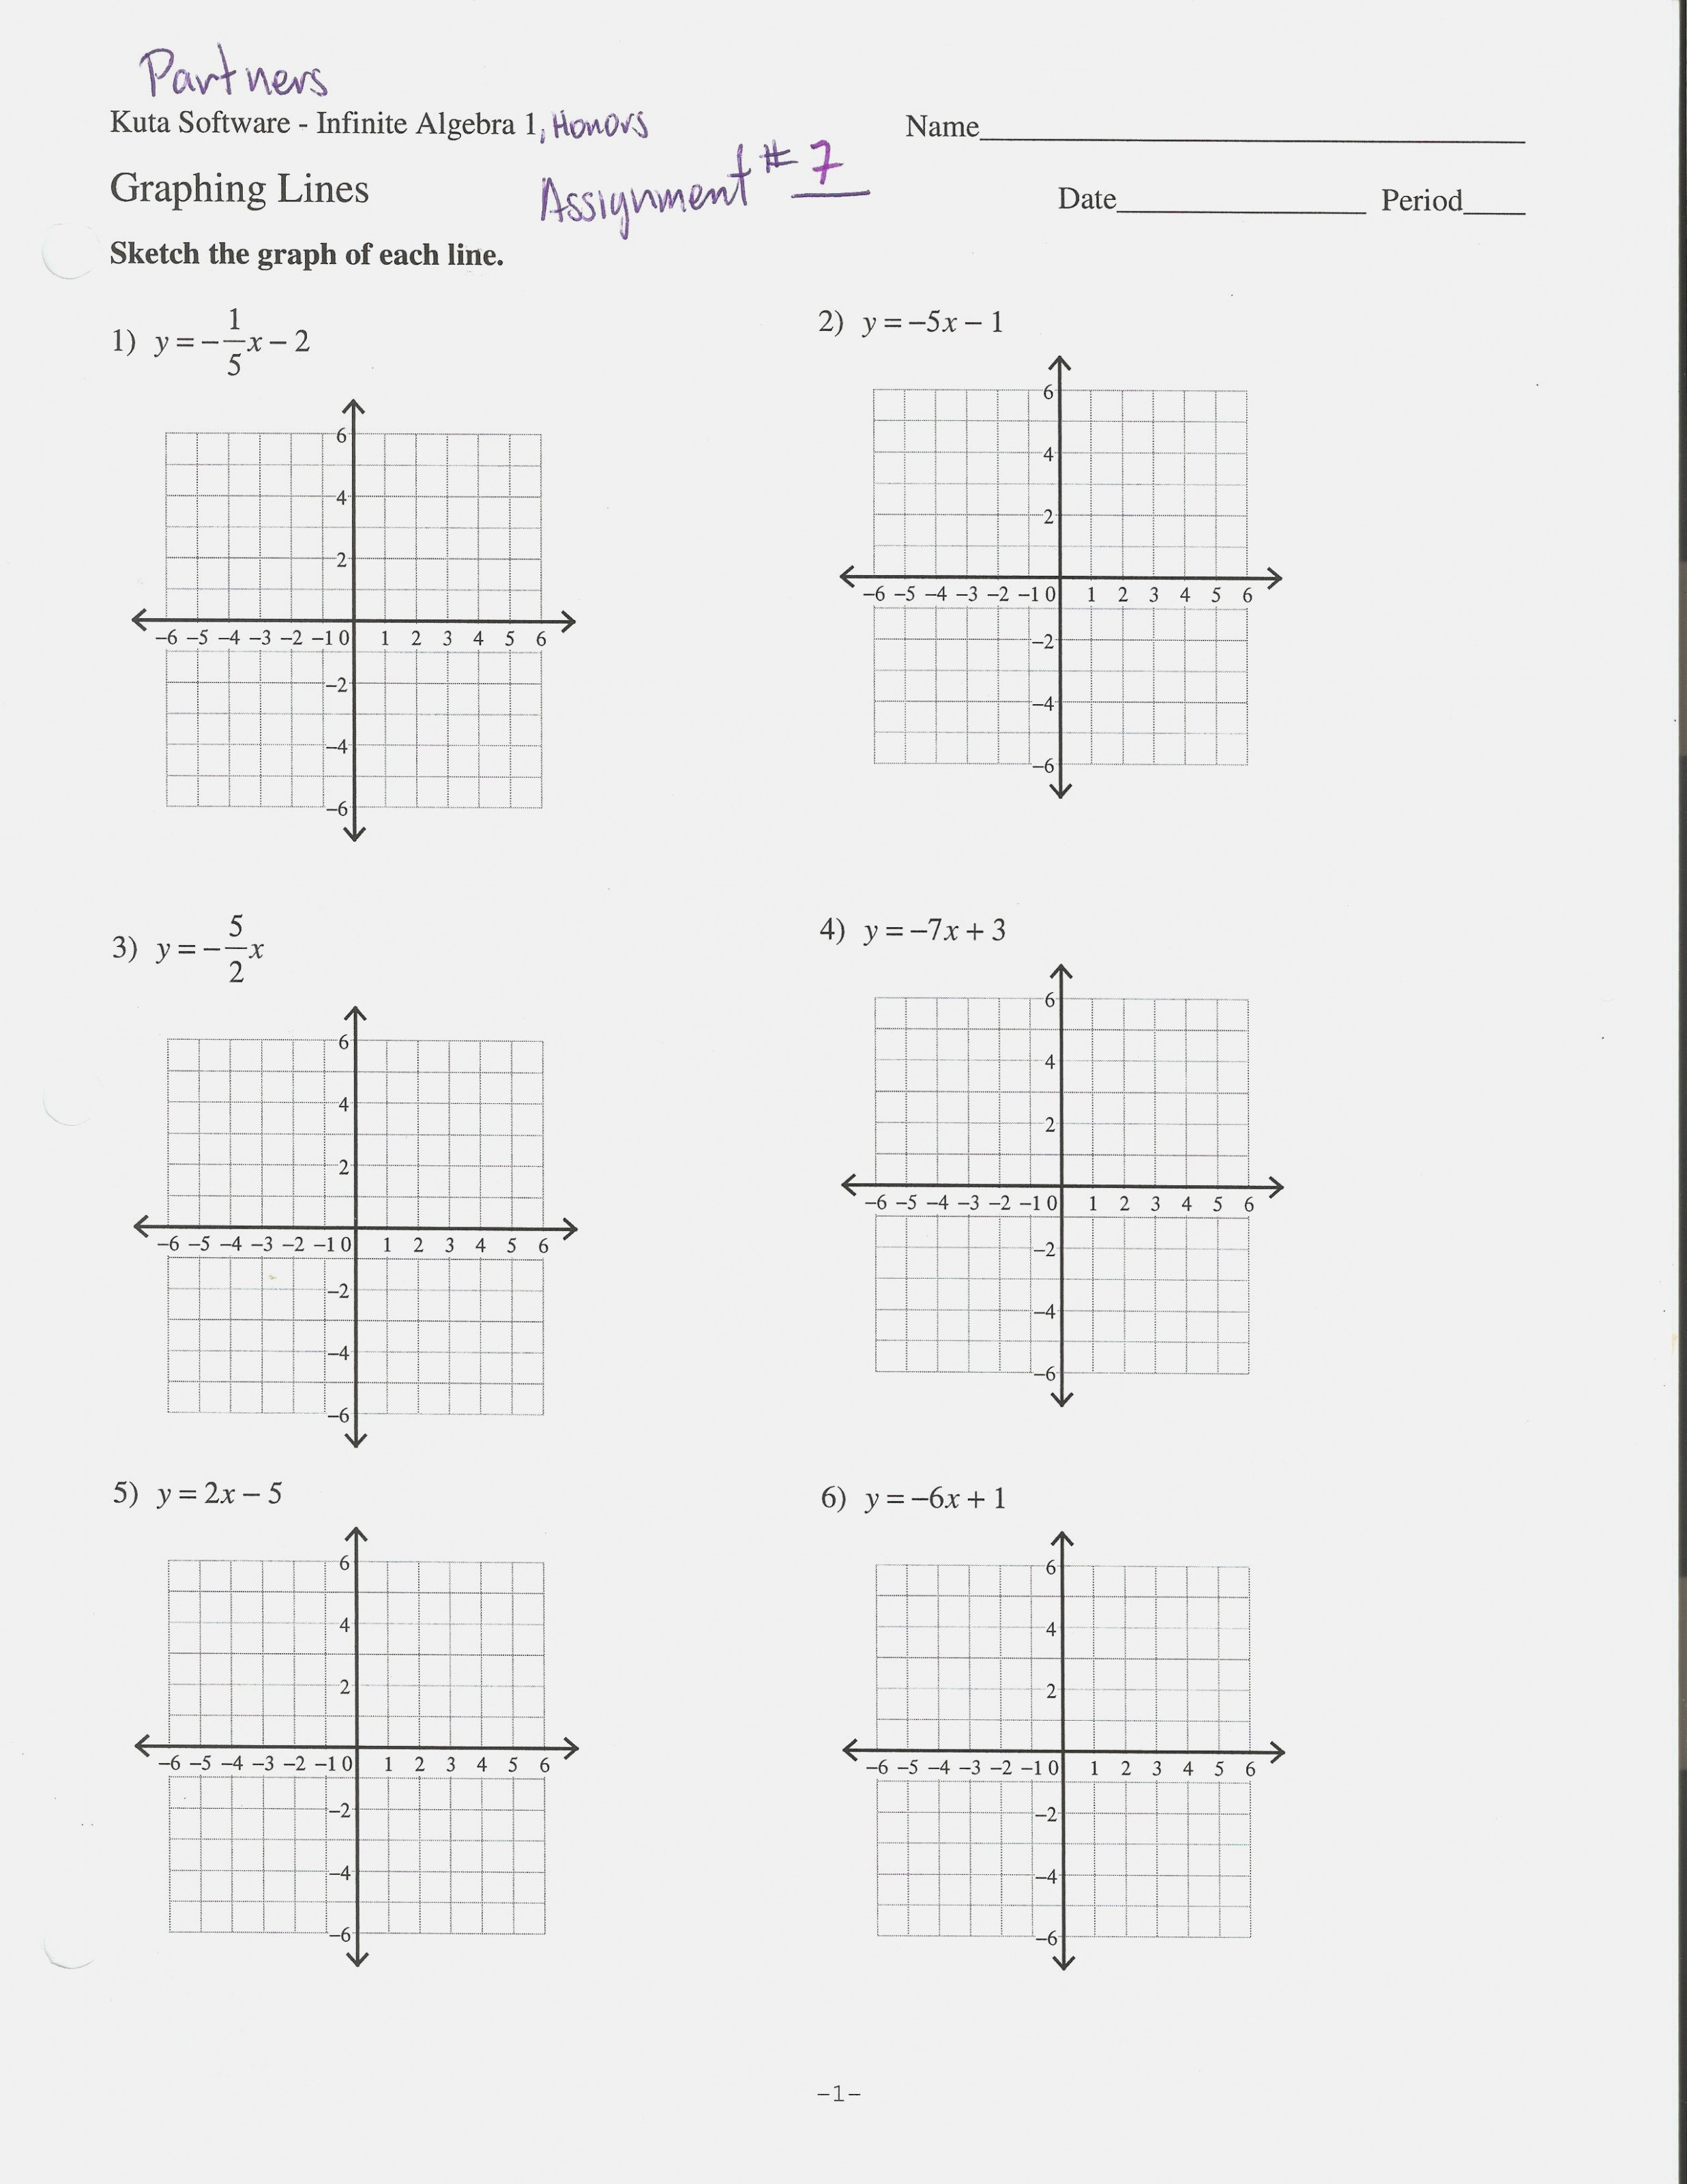 Graphing Equations In Slope Intercept Form Worksheet 133 13 Answers With Regard To Slope Intercept Form Worksheet With Answers